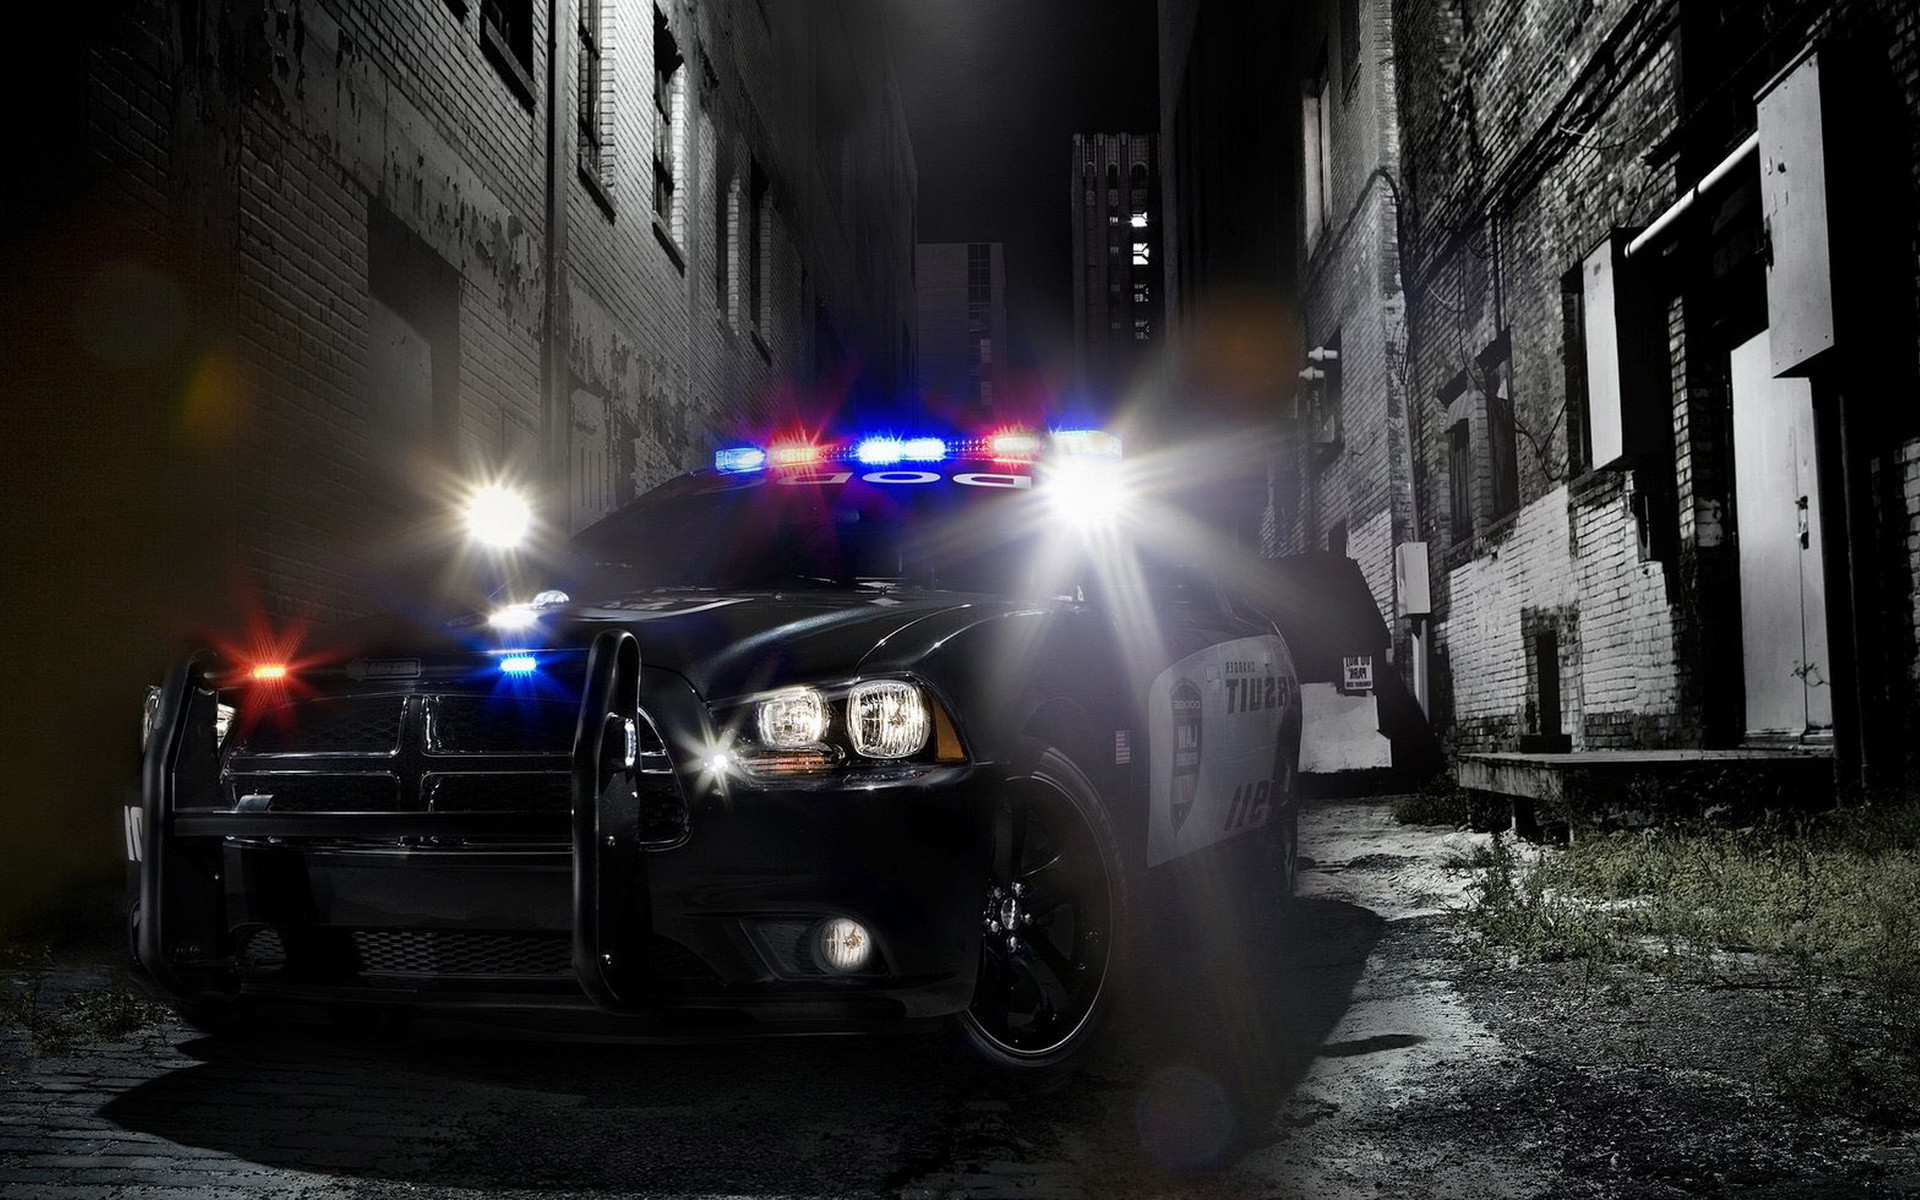 1920x1200 Police Car Wallpaper Background HD